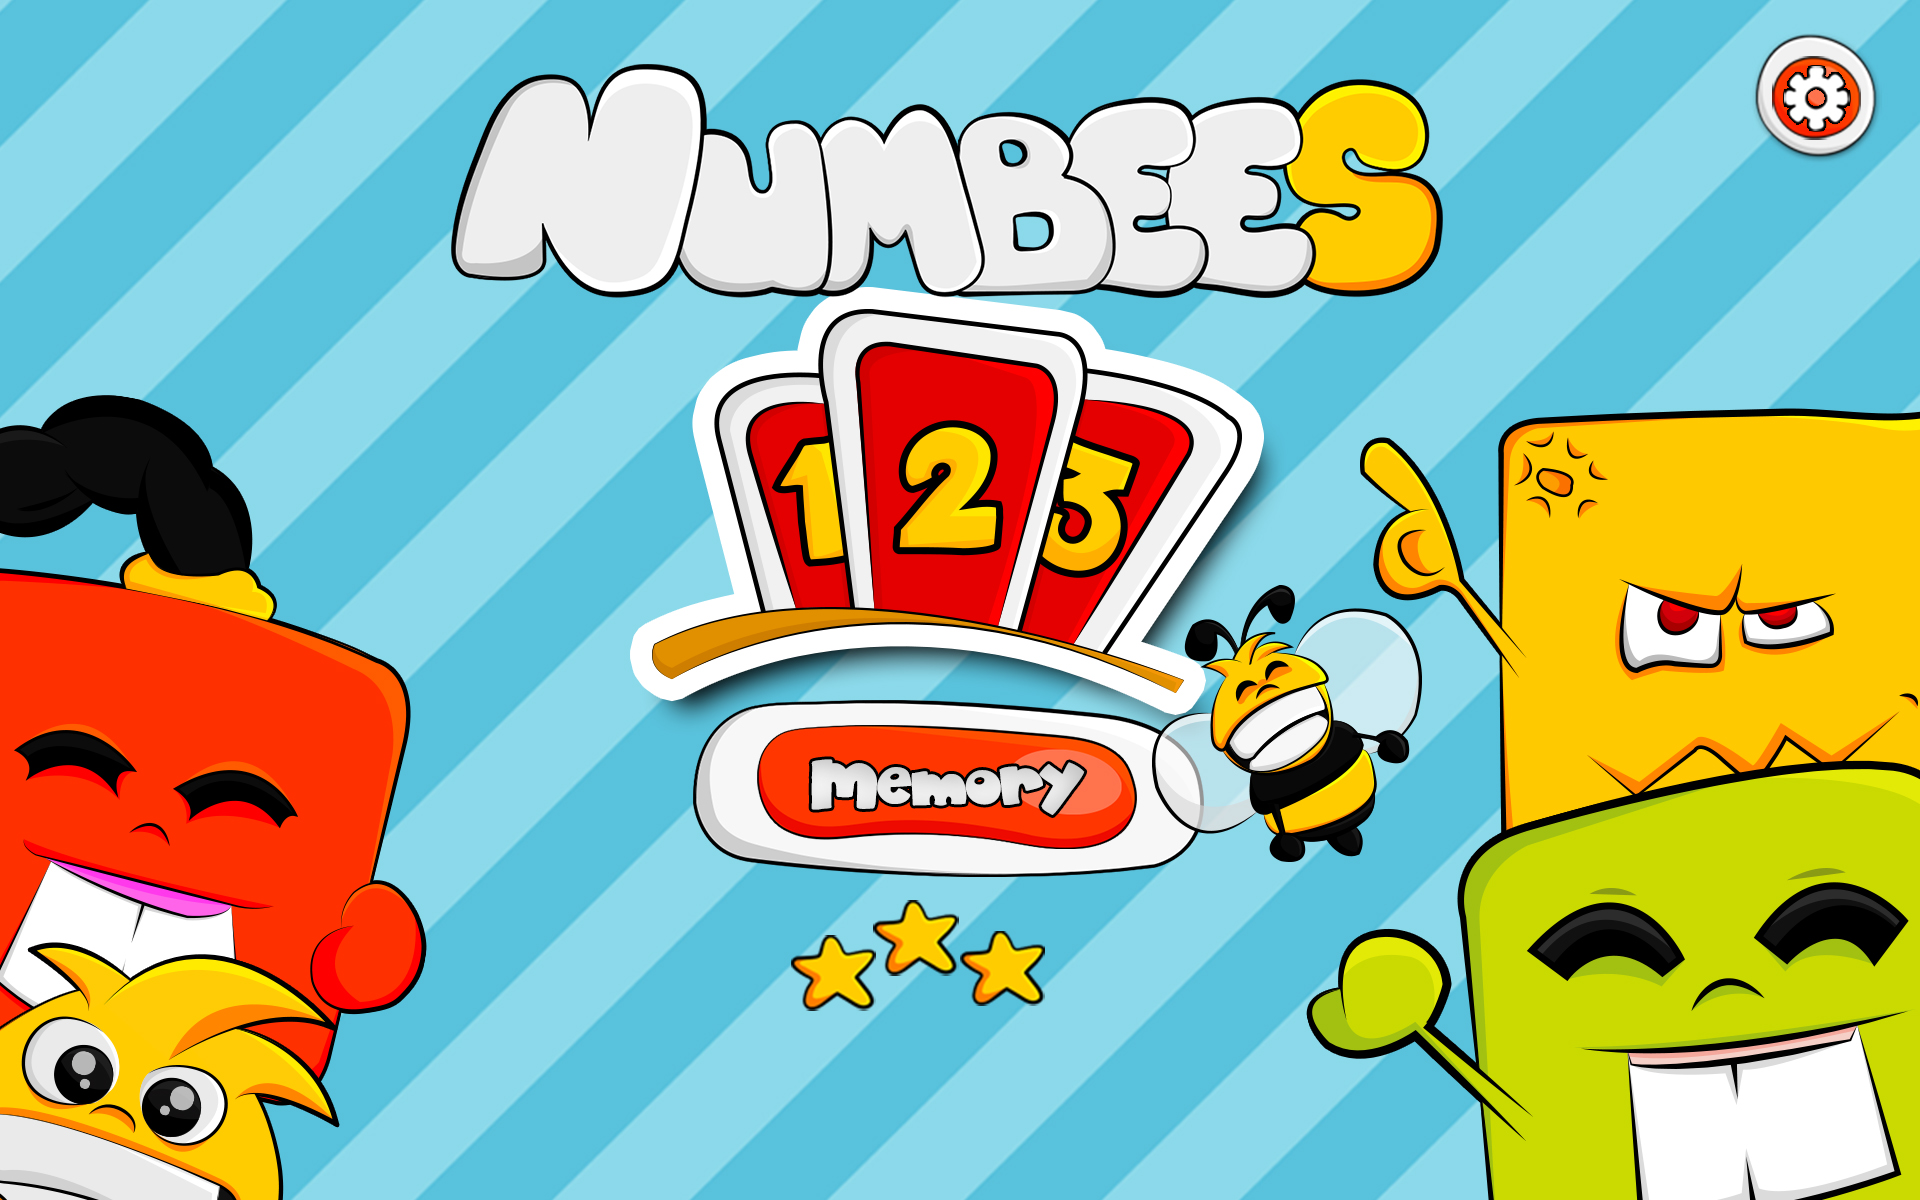 1,2,3 Numbees Memory